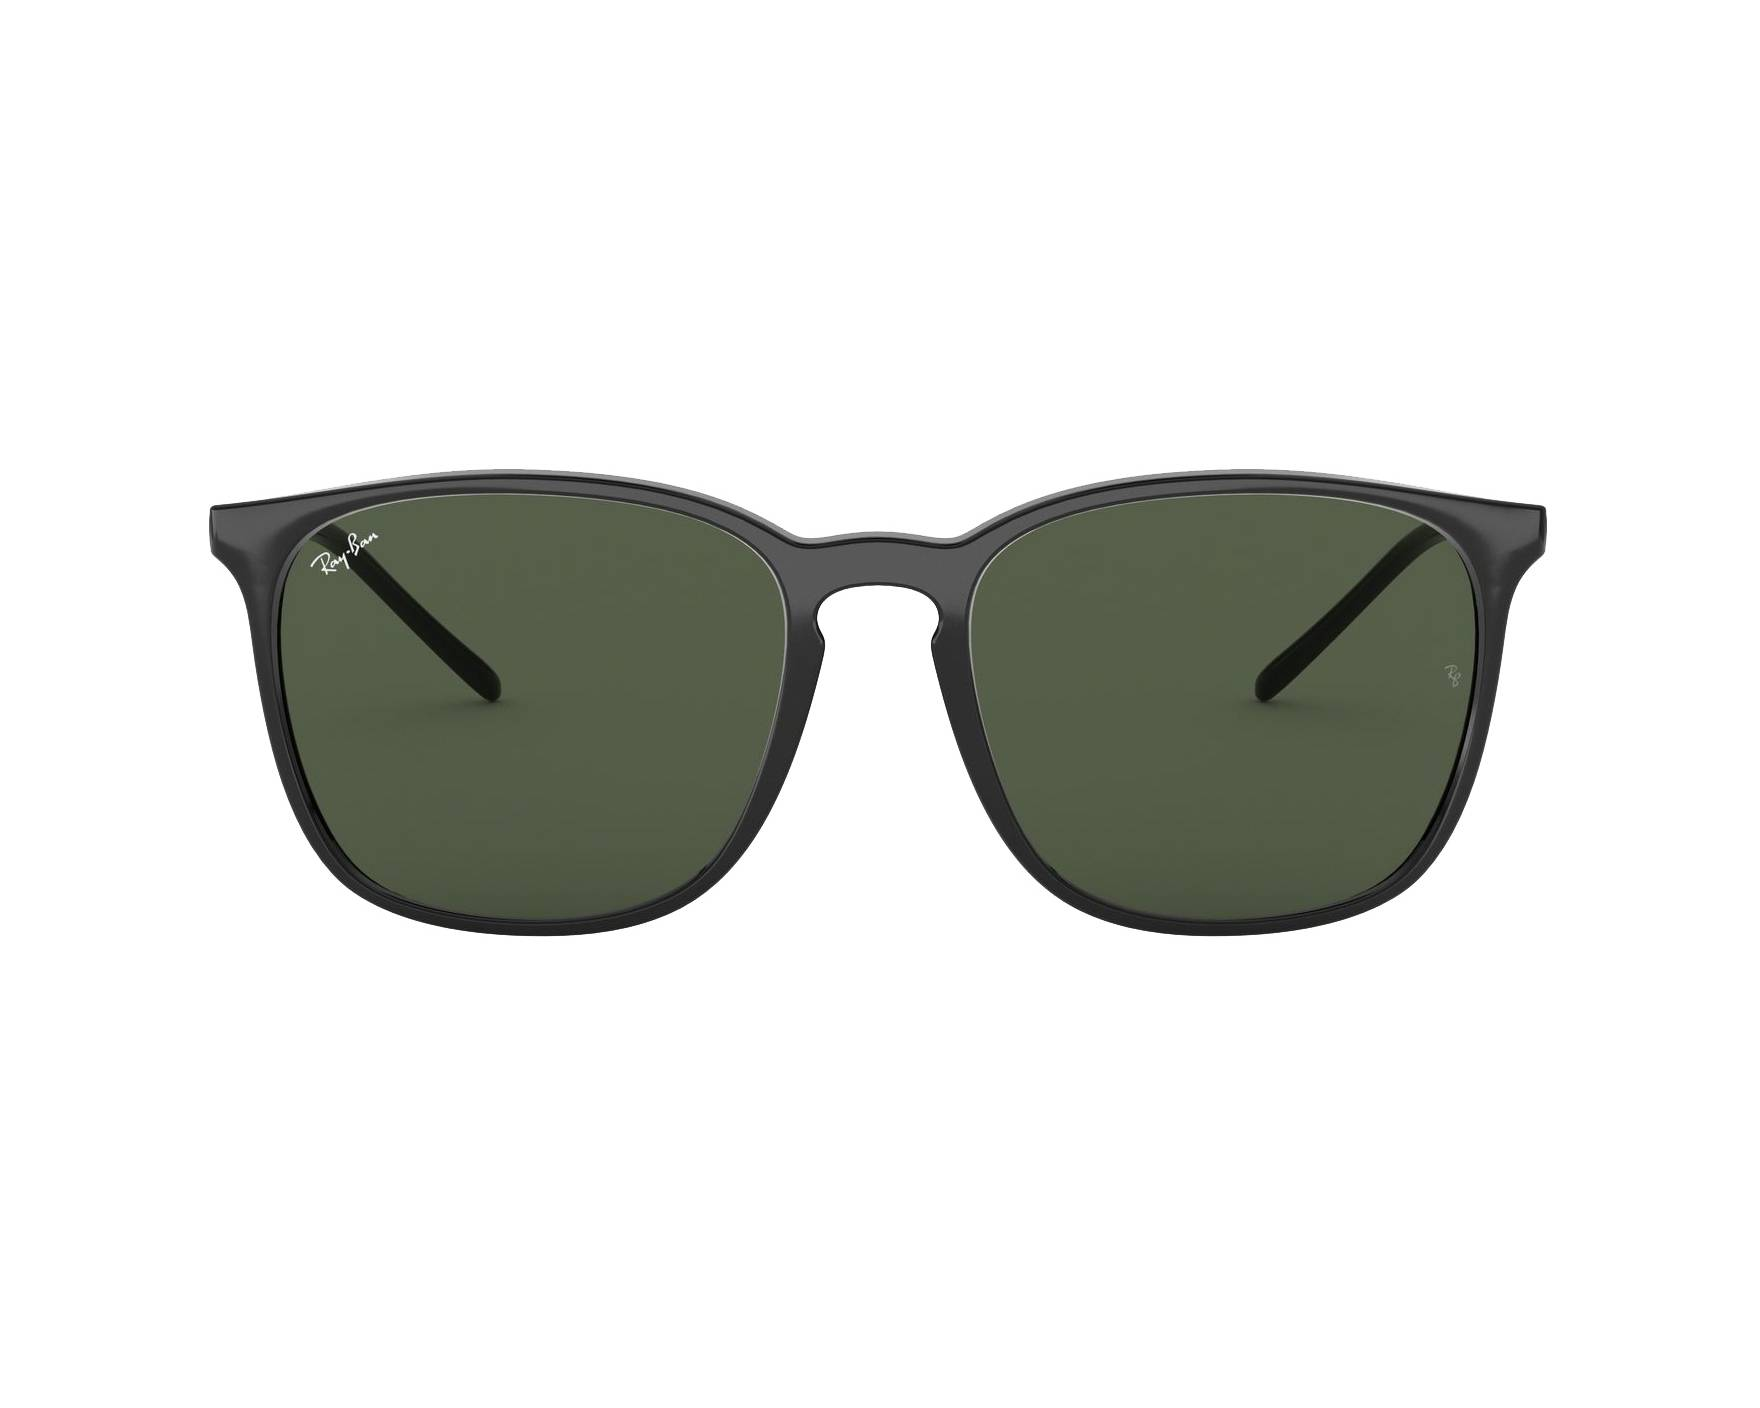 a8cc754656a33 Sunglasses Ray-Ban RB-4387 601 71 56-18 Black 360 degree